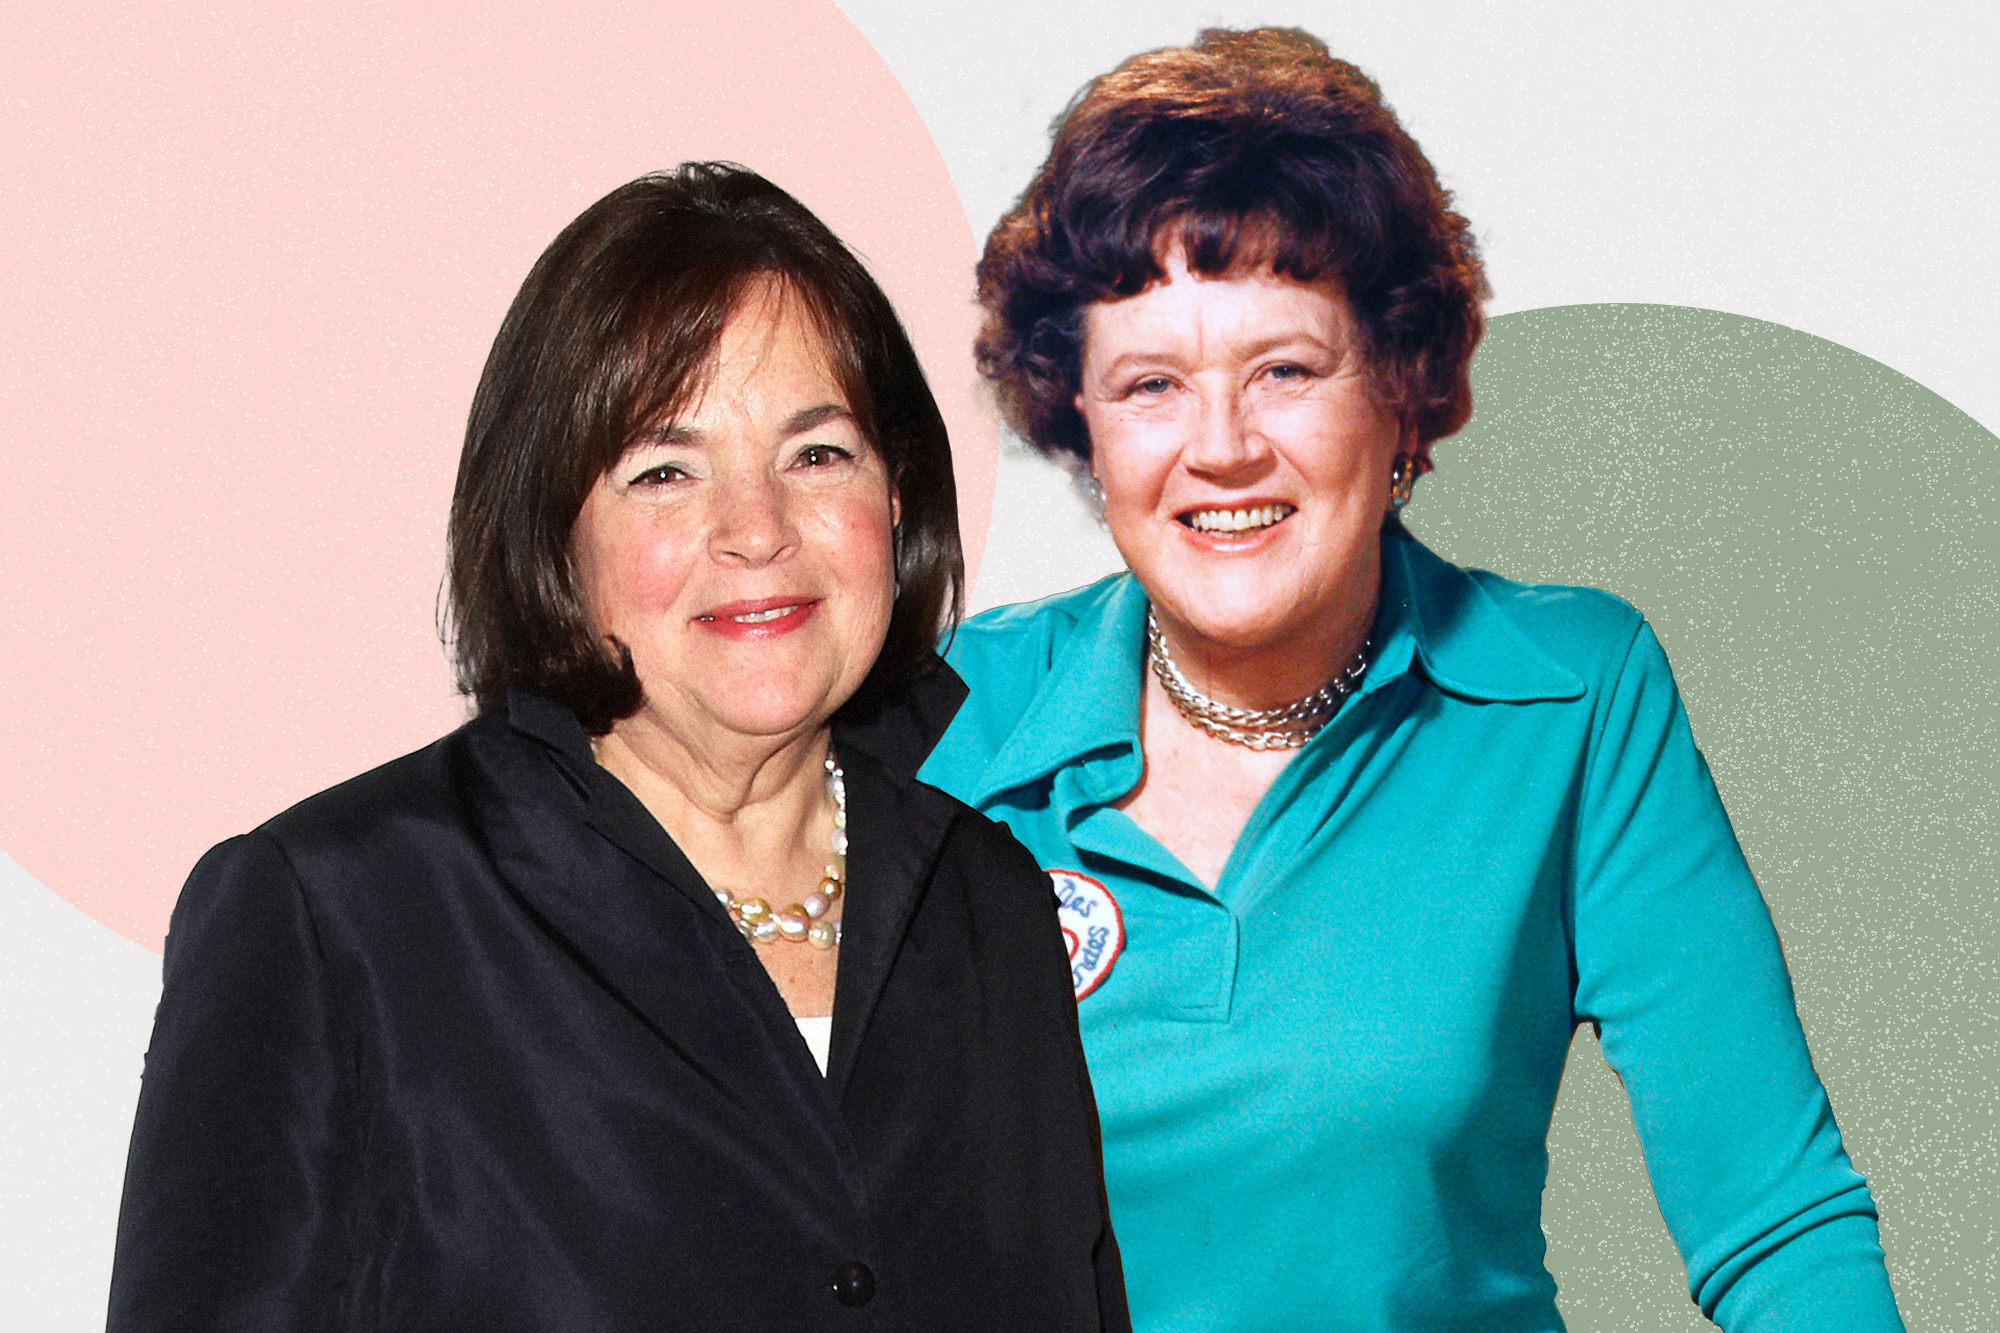 Ina Garten and Julia Child on a designed background